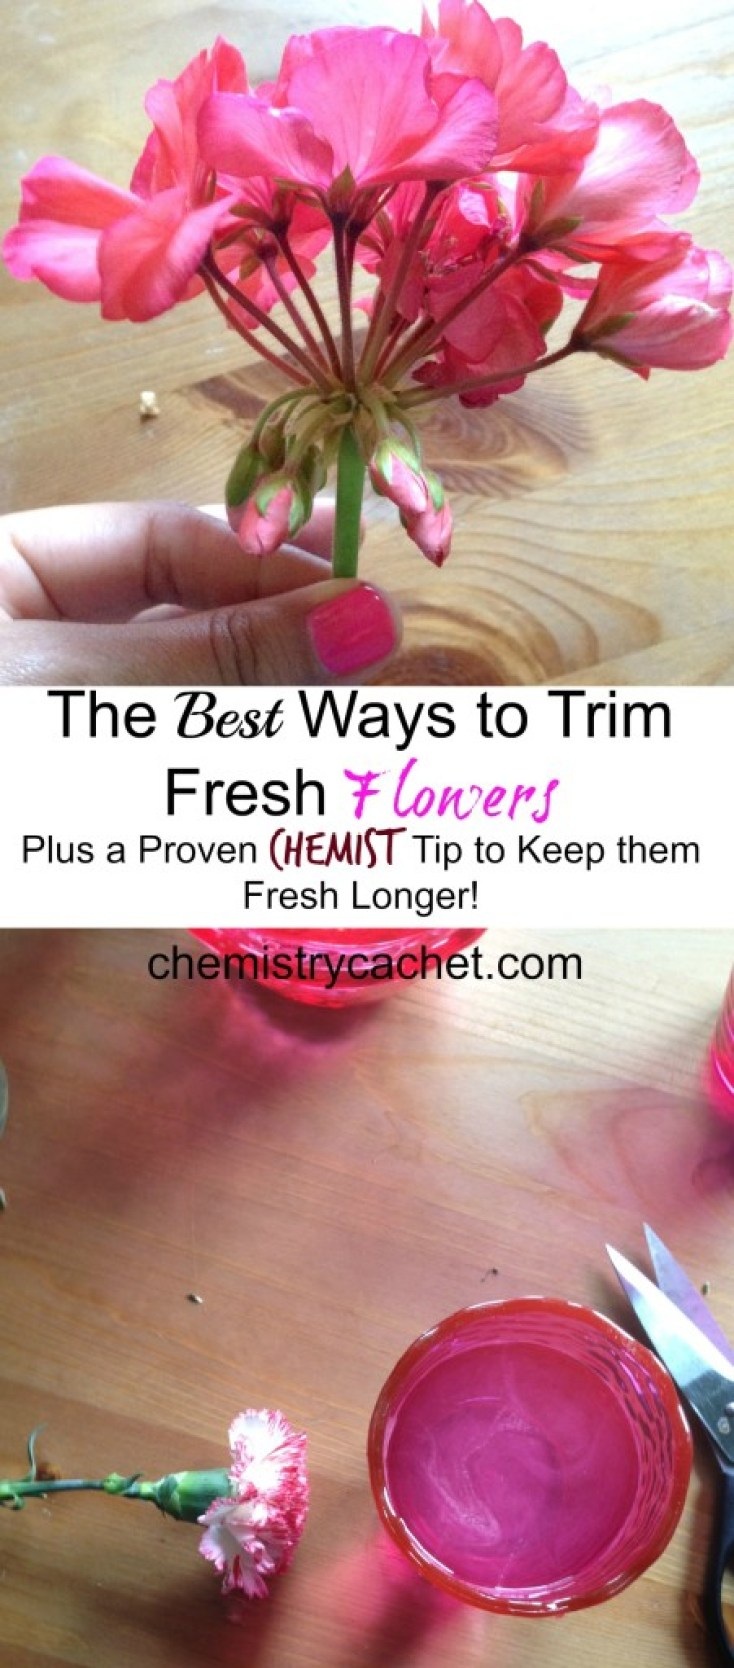 The Best Ways To Trim Fresh Flowers Plus a Proven Tip to Keep the Fresh Longer on chemistrycachet.com